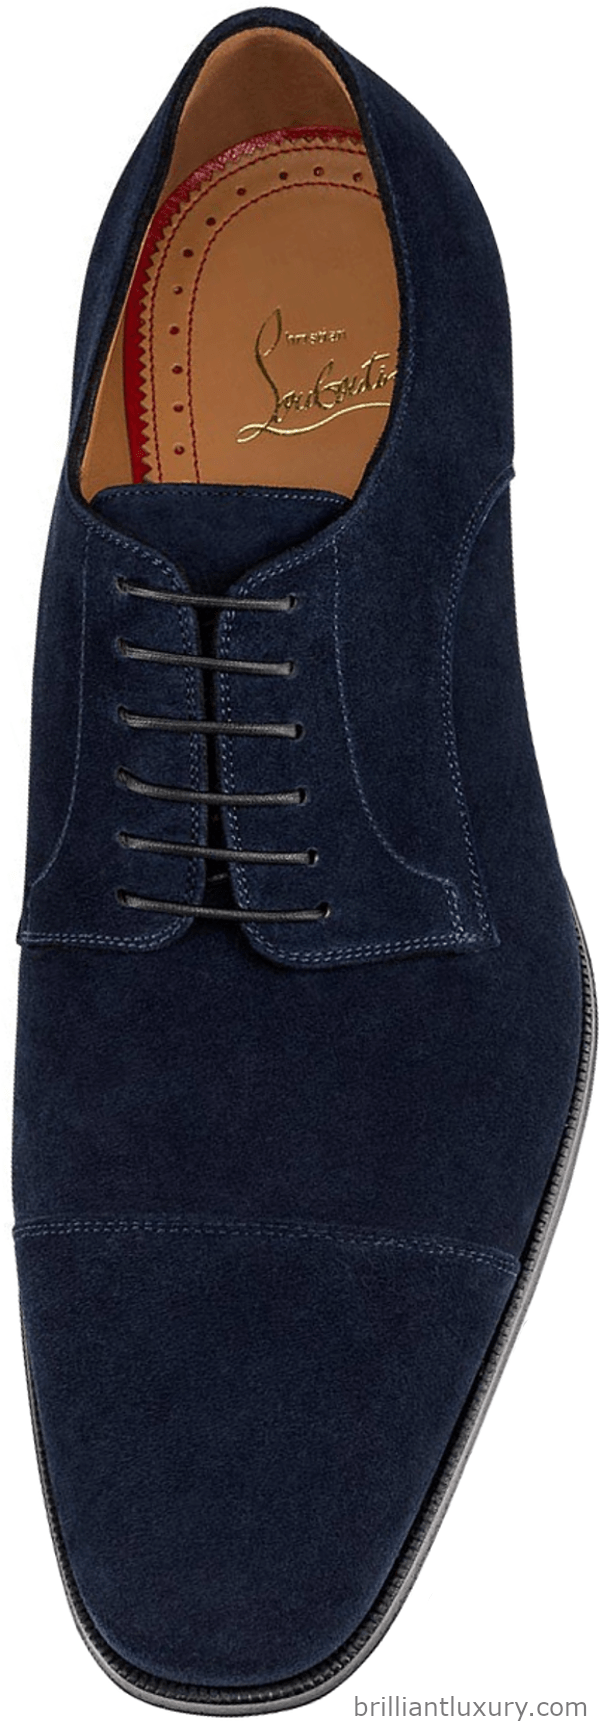 Christian Louboutin Cousin Top Daviol oxford flat in navy blue velour leather